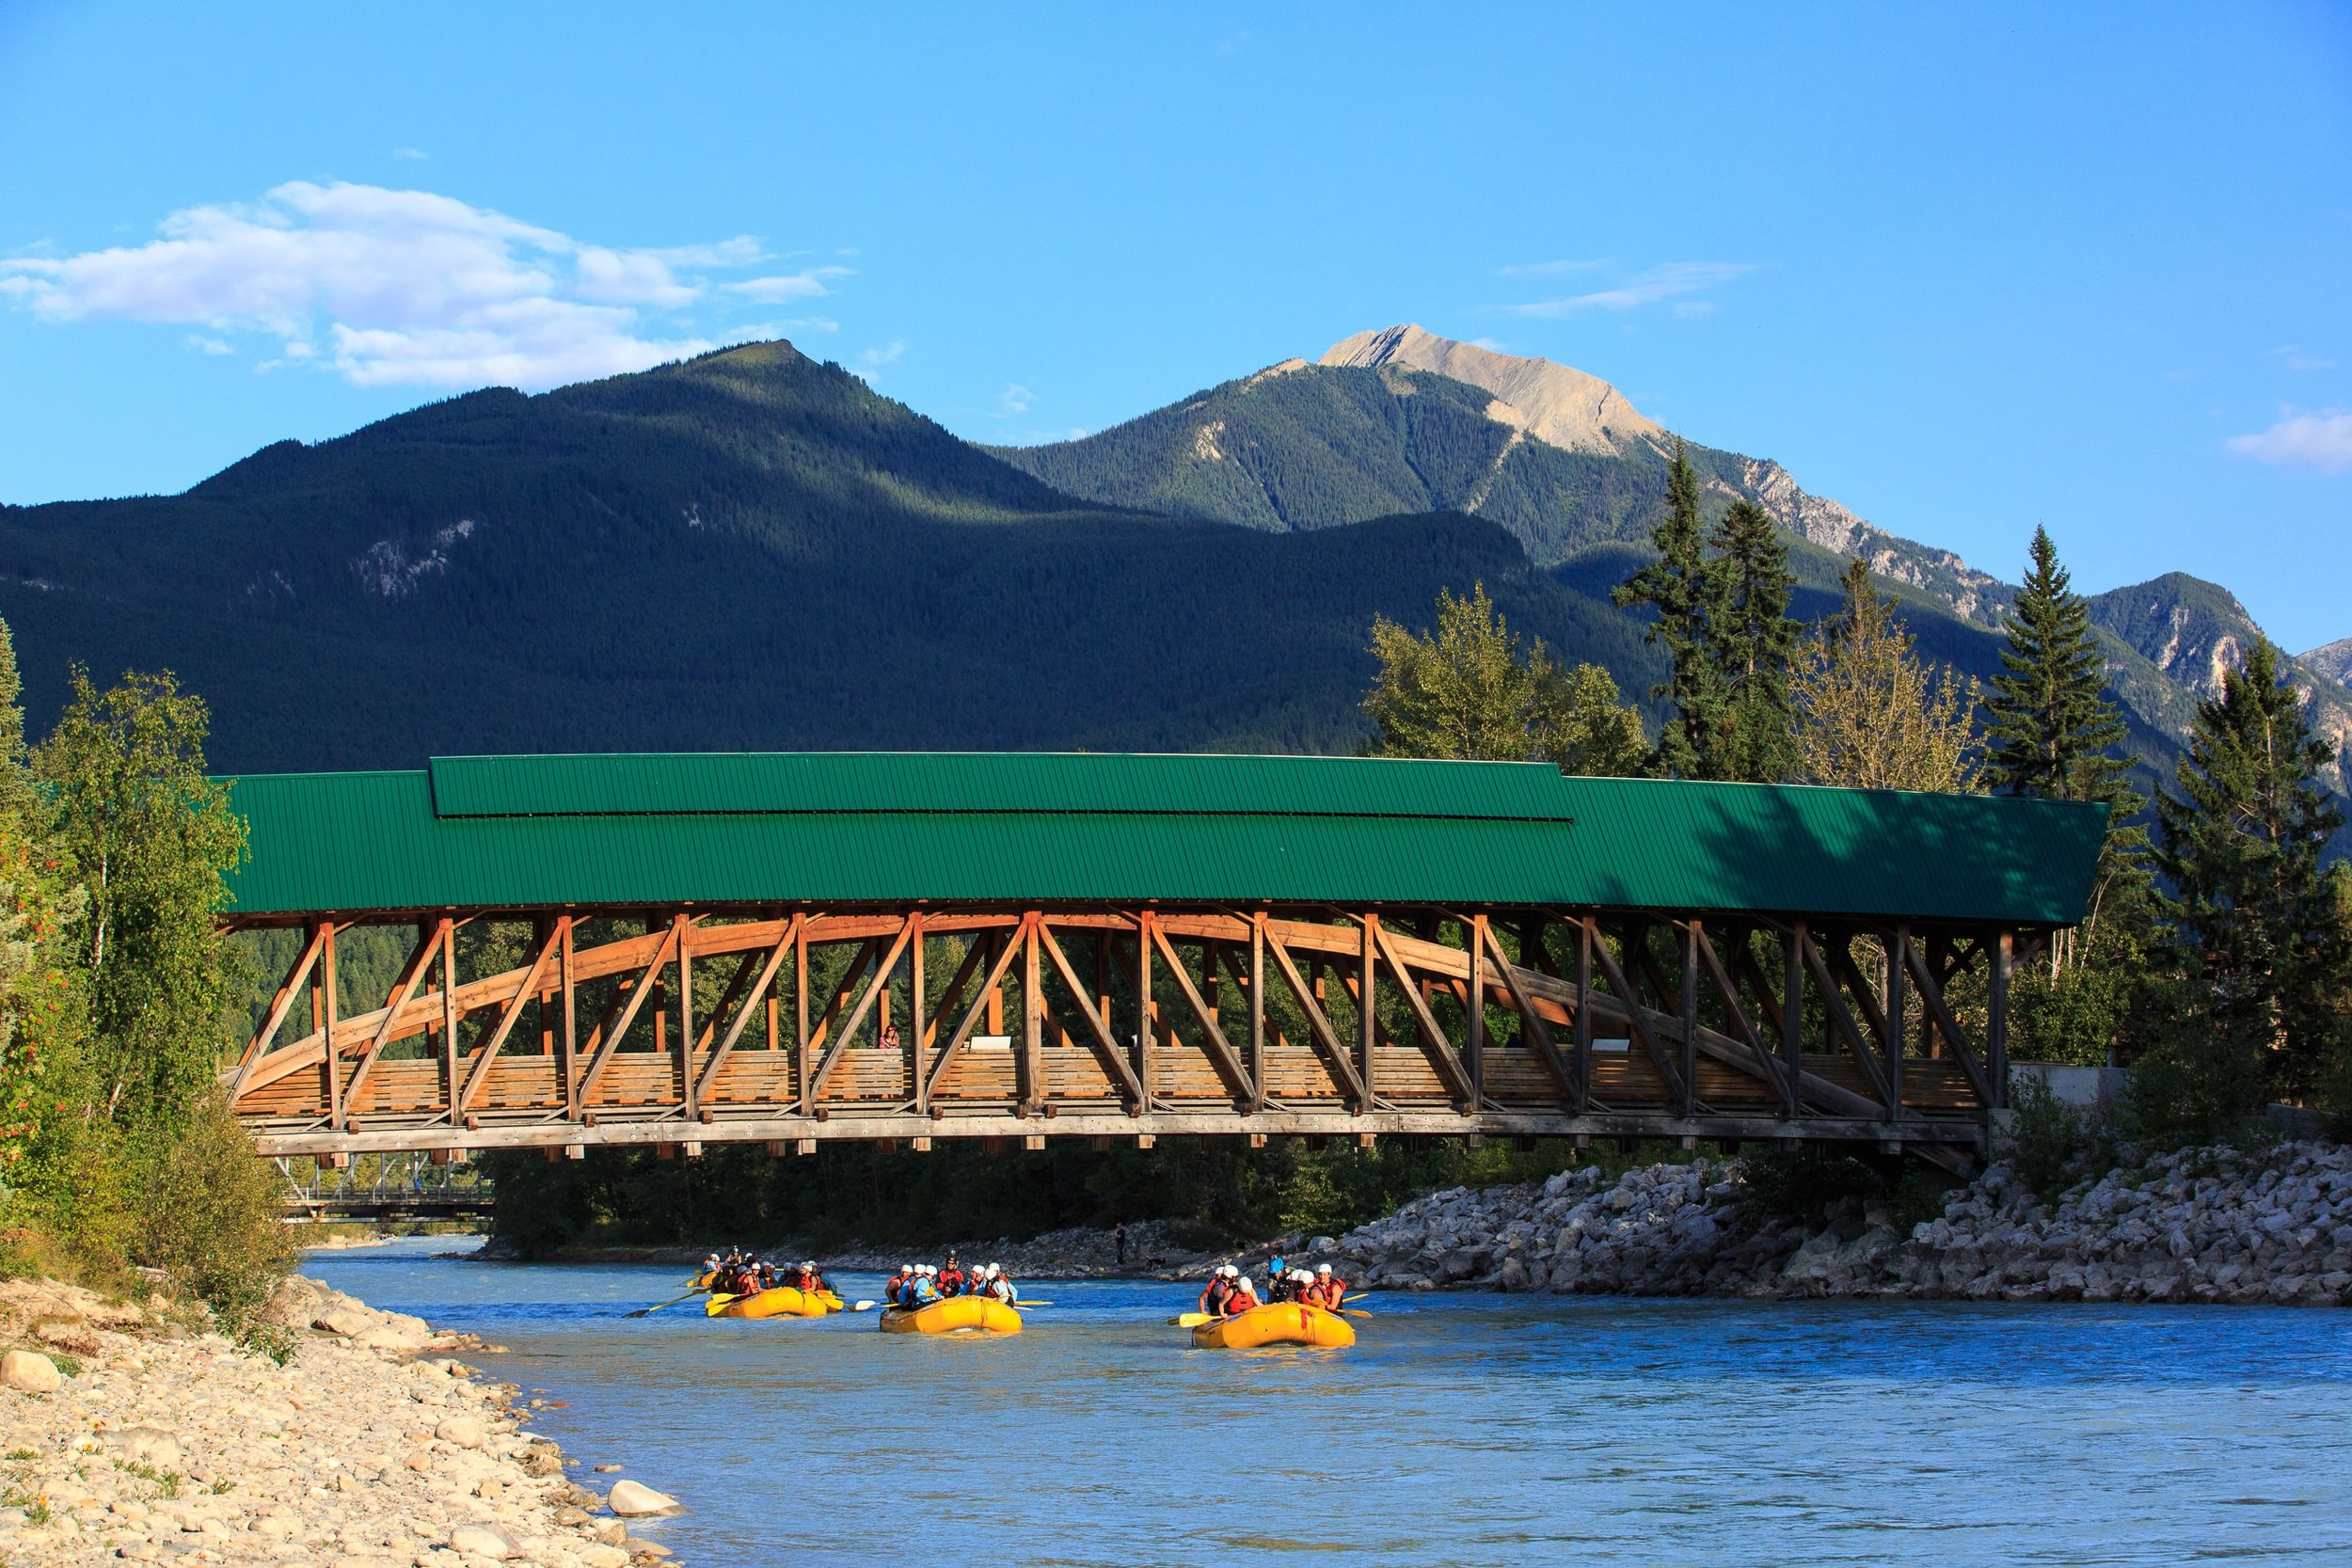 Rafting Through the Town of Golden, BC